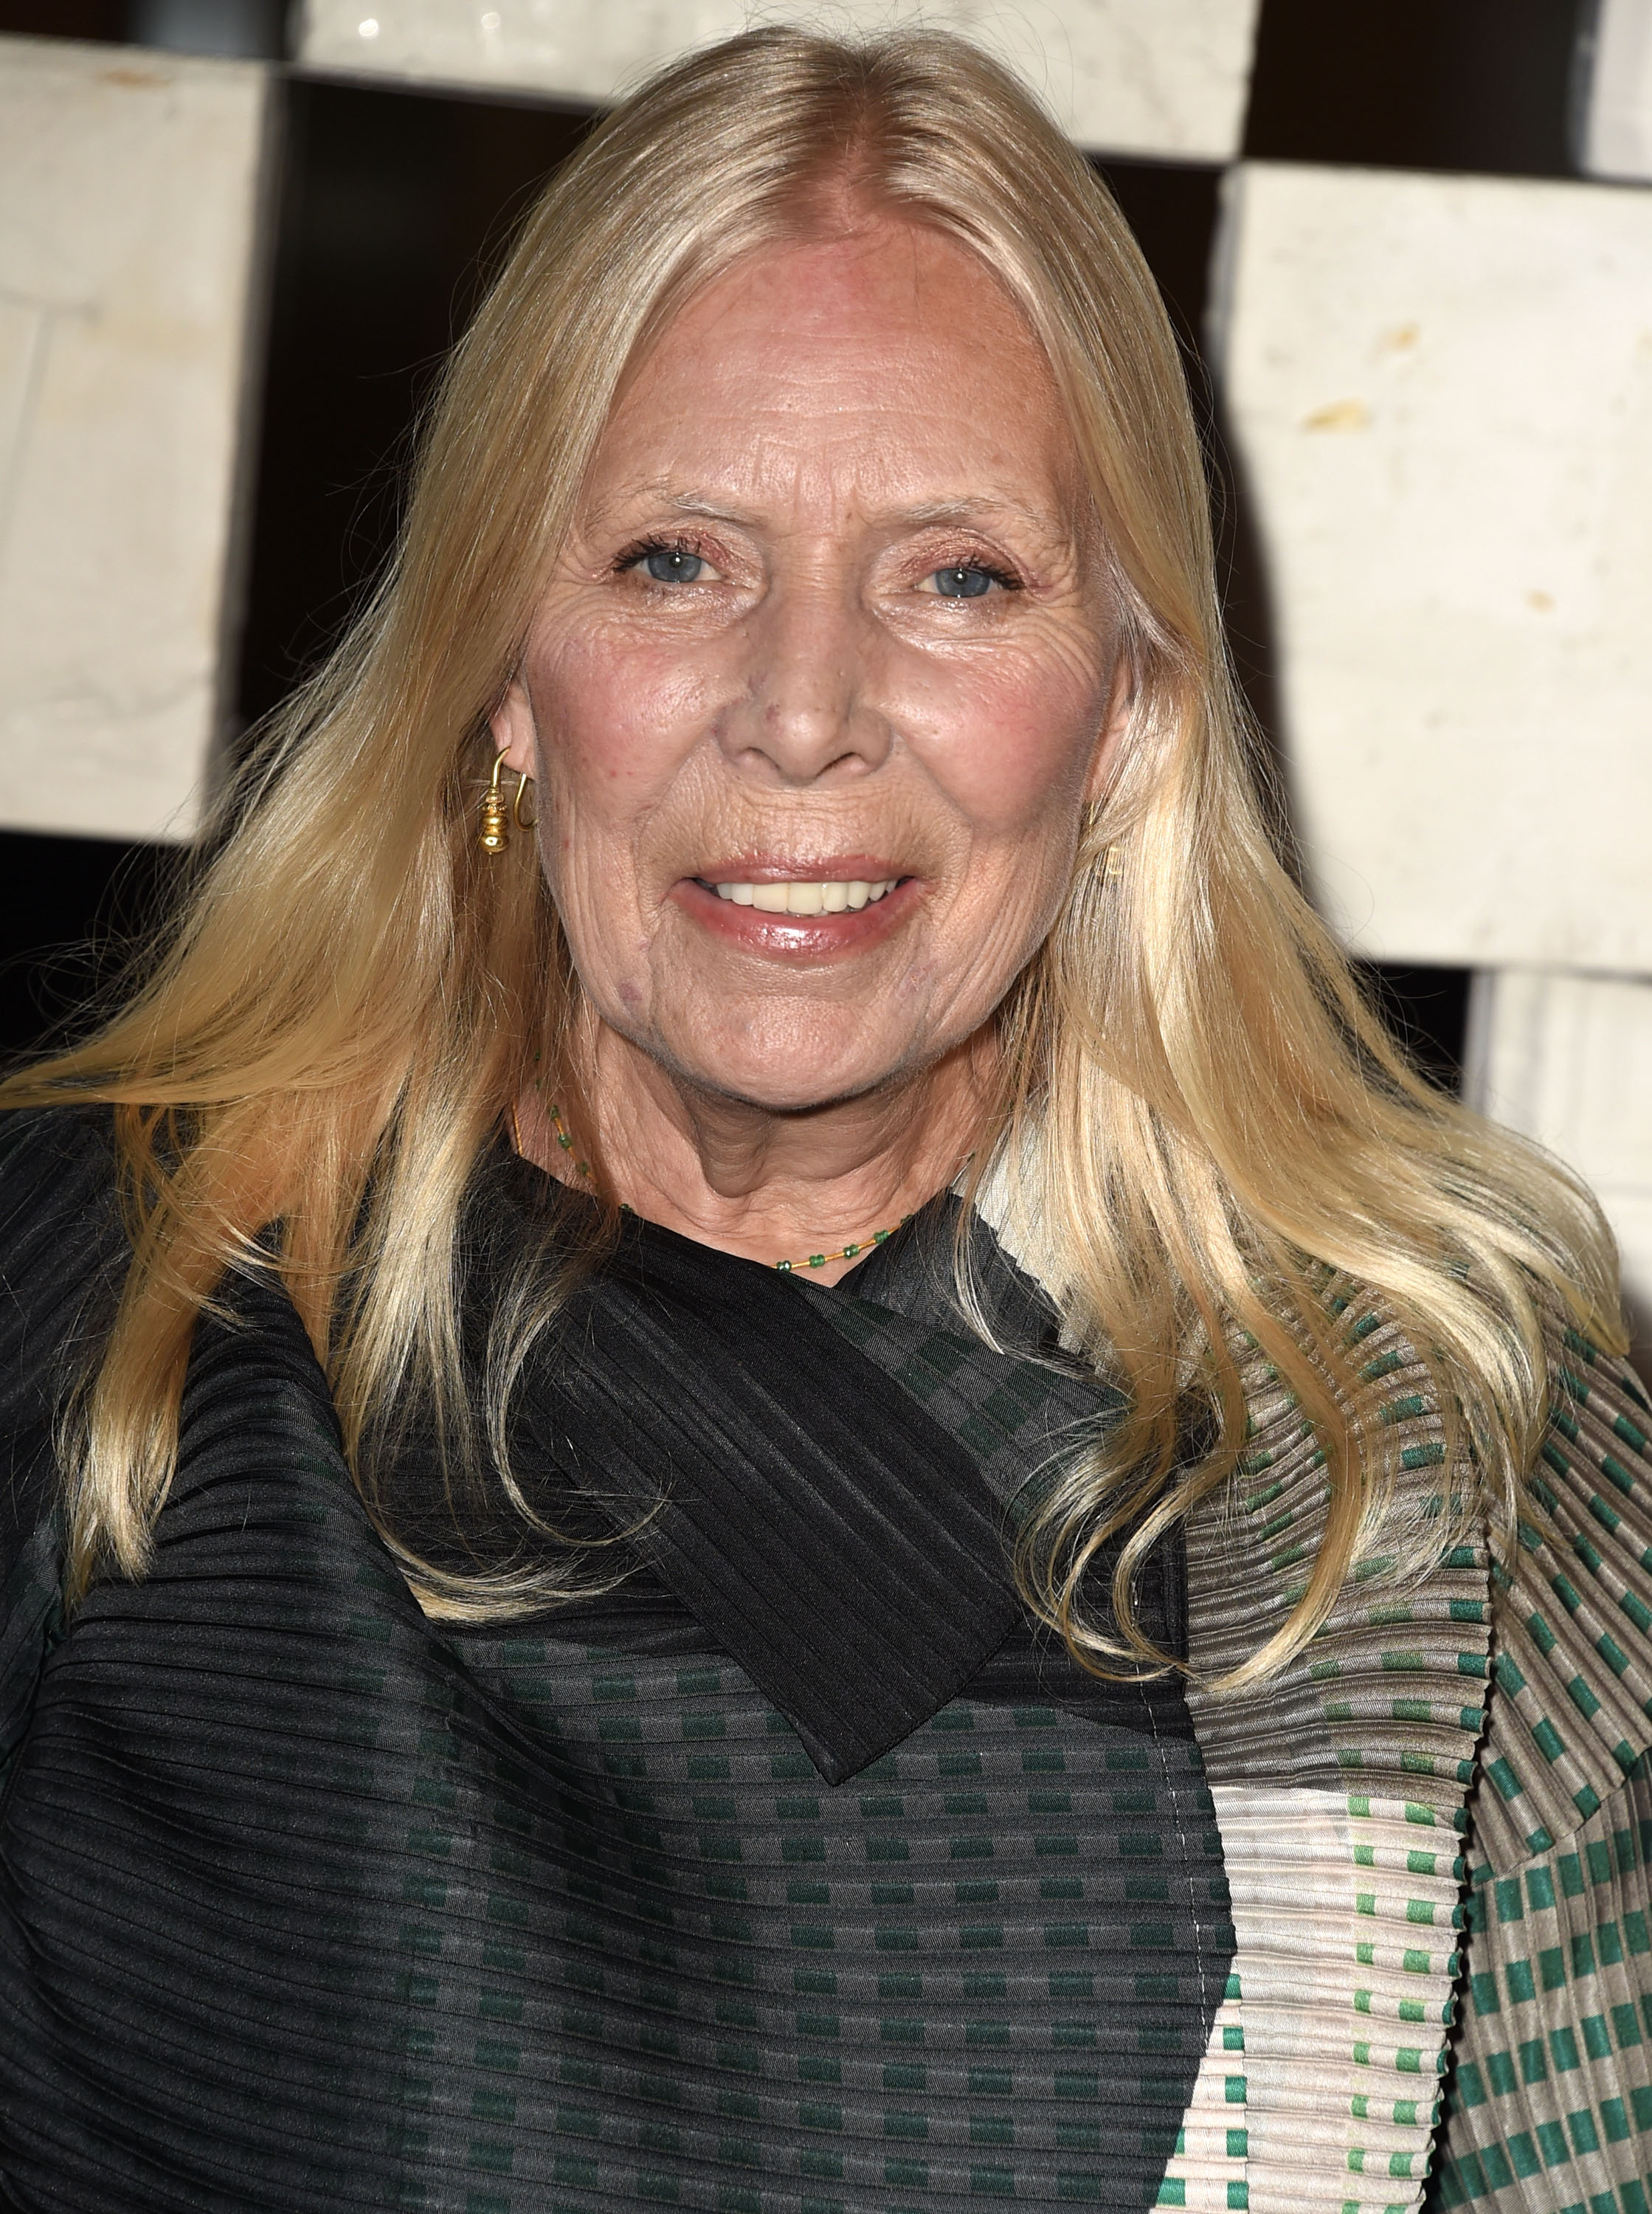 Joni Mitchell on October 11, 2014 in Westwood, Calif.